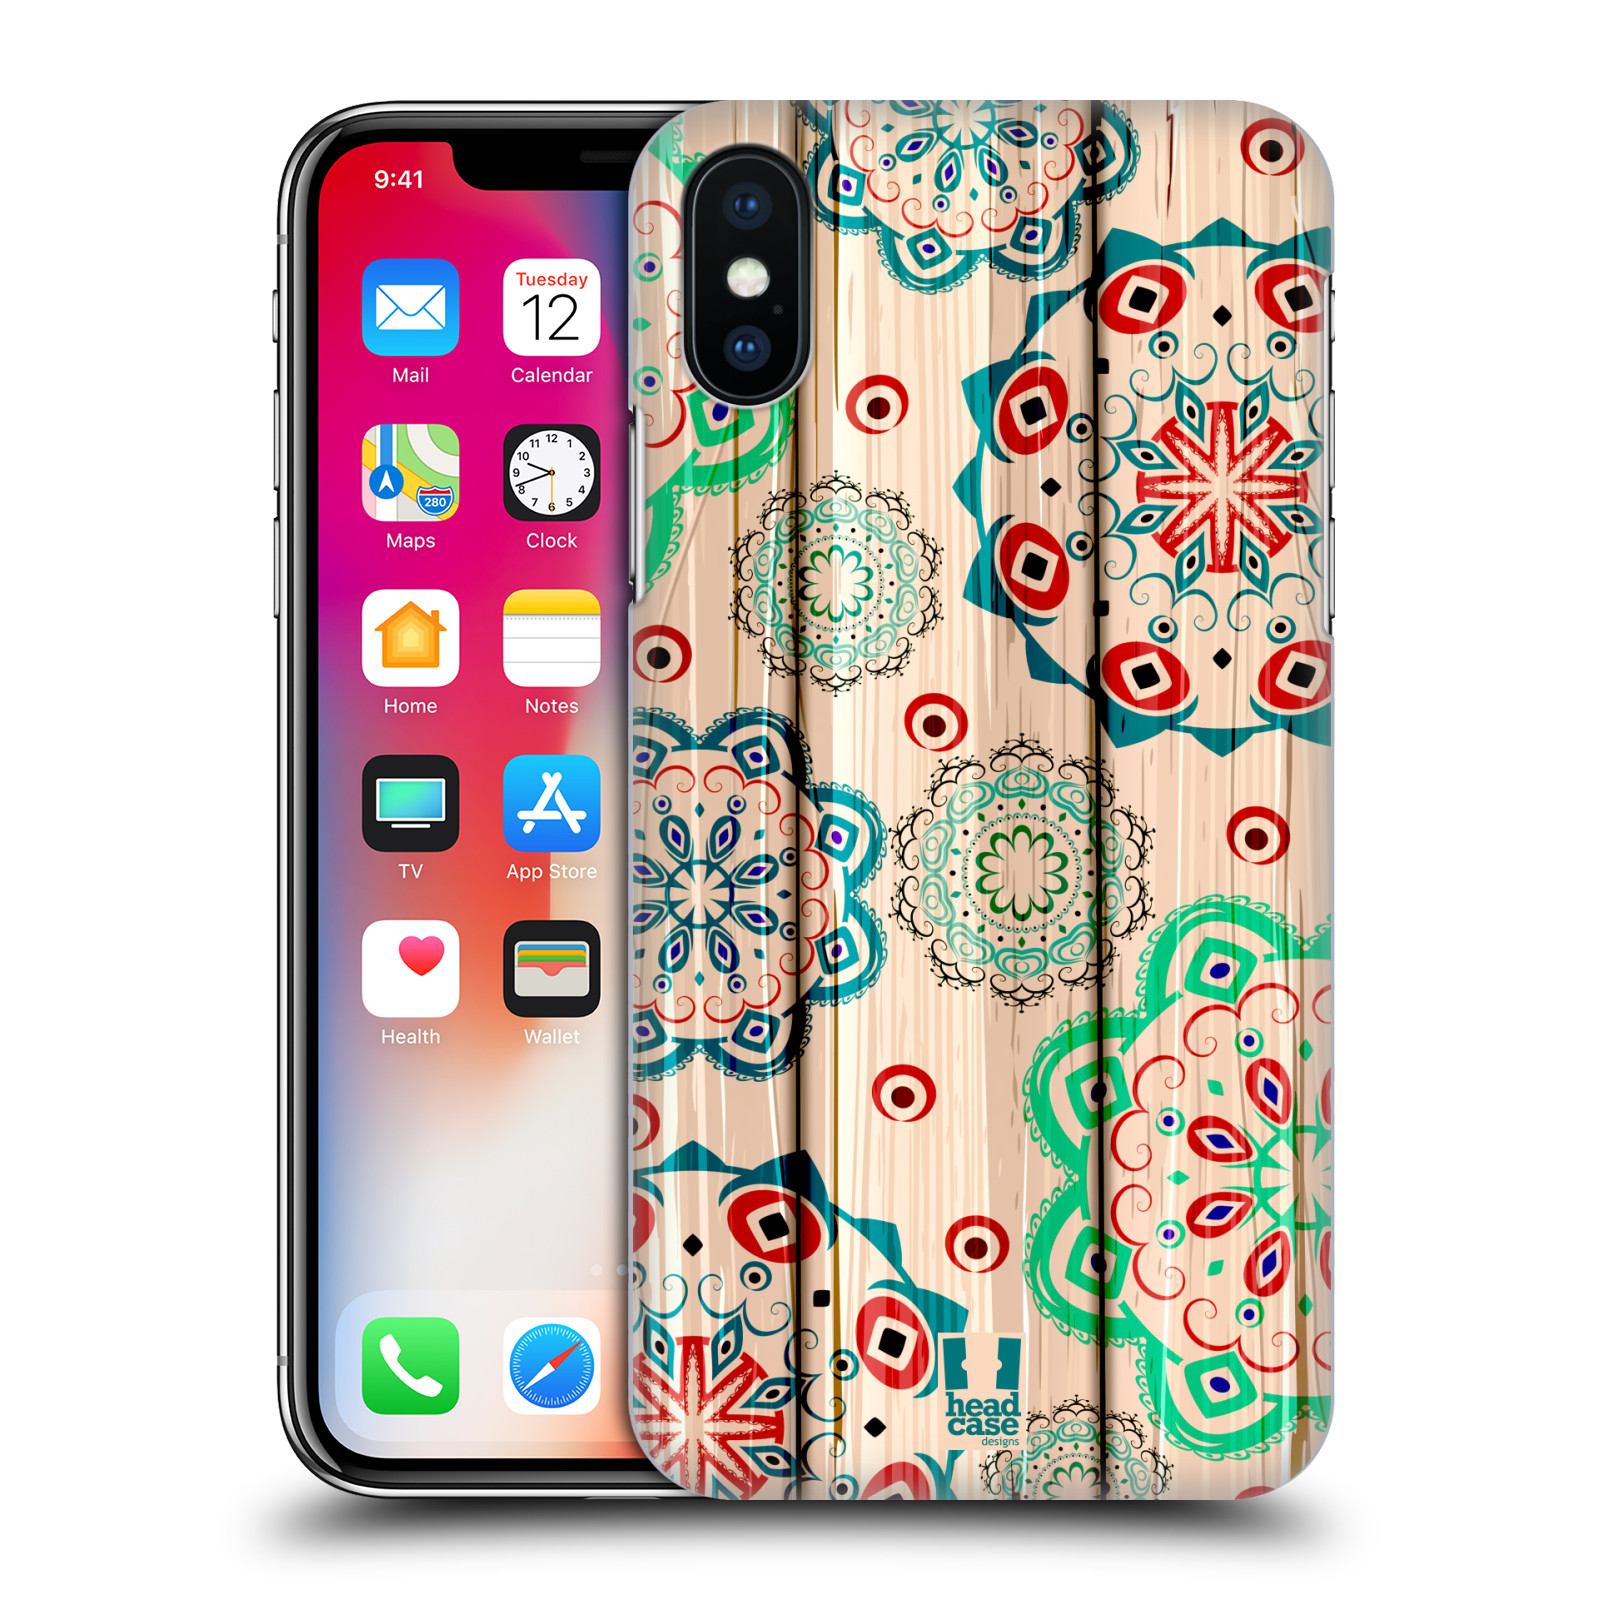 HEAD-CASE-DESIGNS-MIXED-UP-MUSTER-RUCKSEITE-HULLE-FUR-APPLE-iPHONE-X